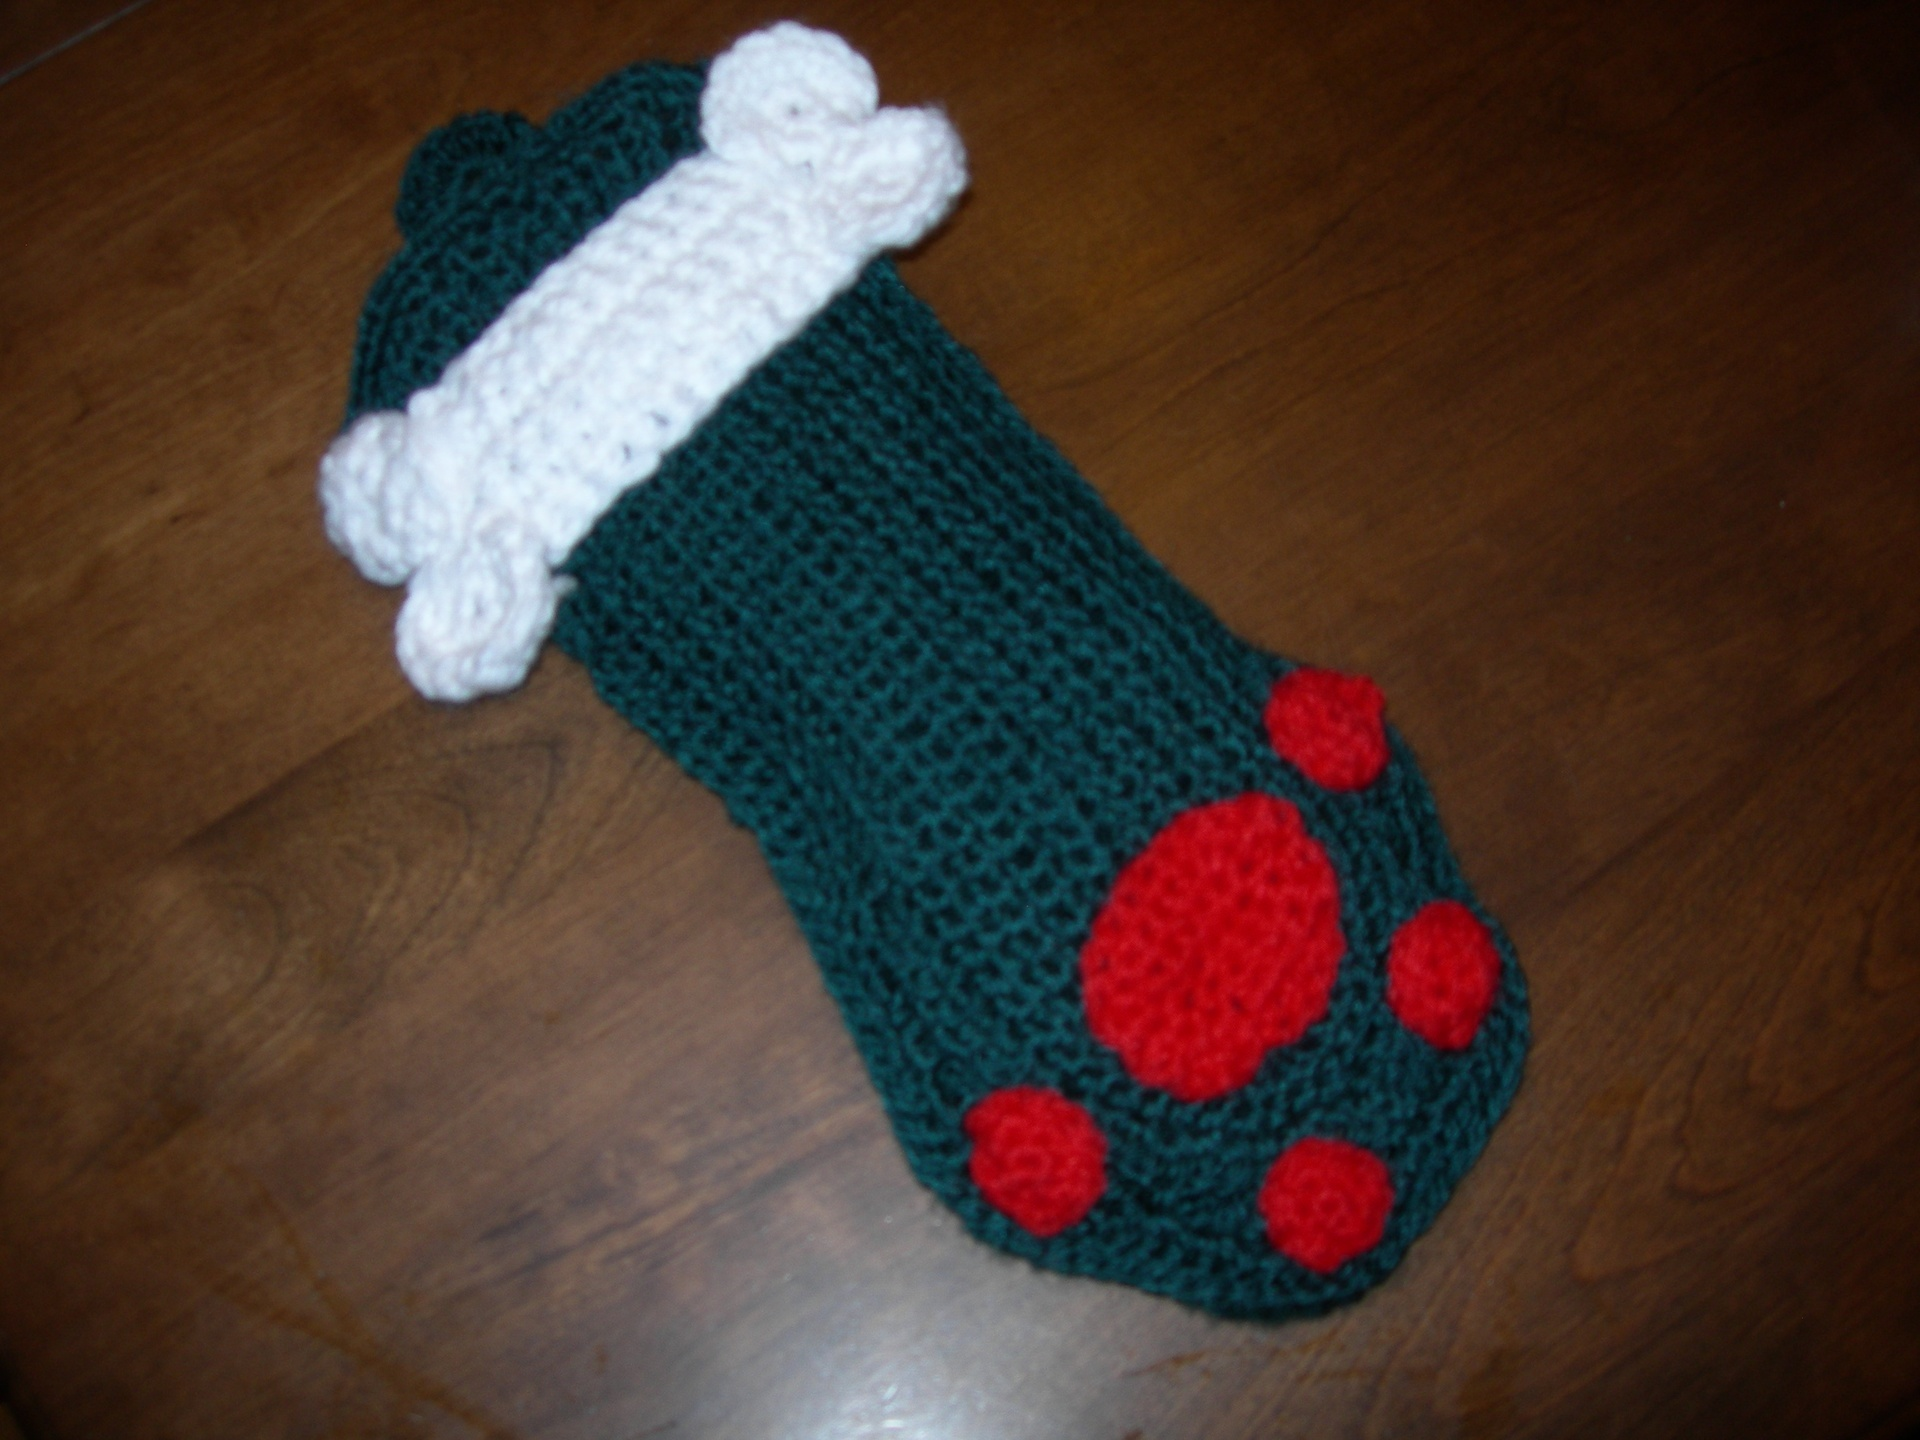 Treat the loveable pet members of your family to some holiday goodies so they'll have their own fun come Christmas morning. This stocking for your kitty is easy to crochet and will complete your group of family stockings.5/5(2).